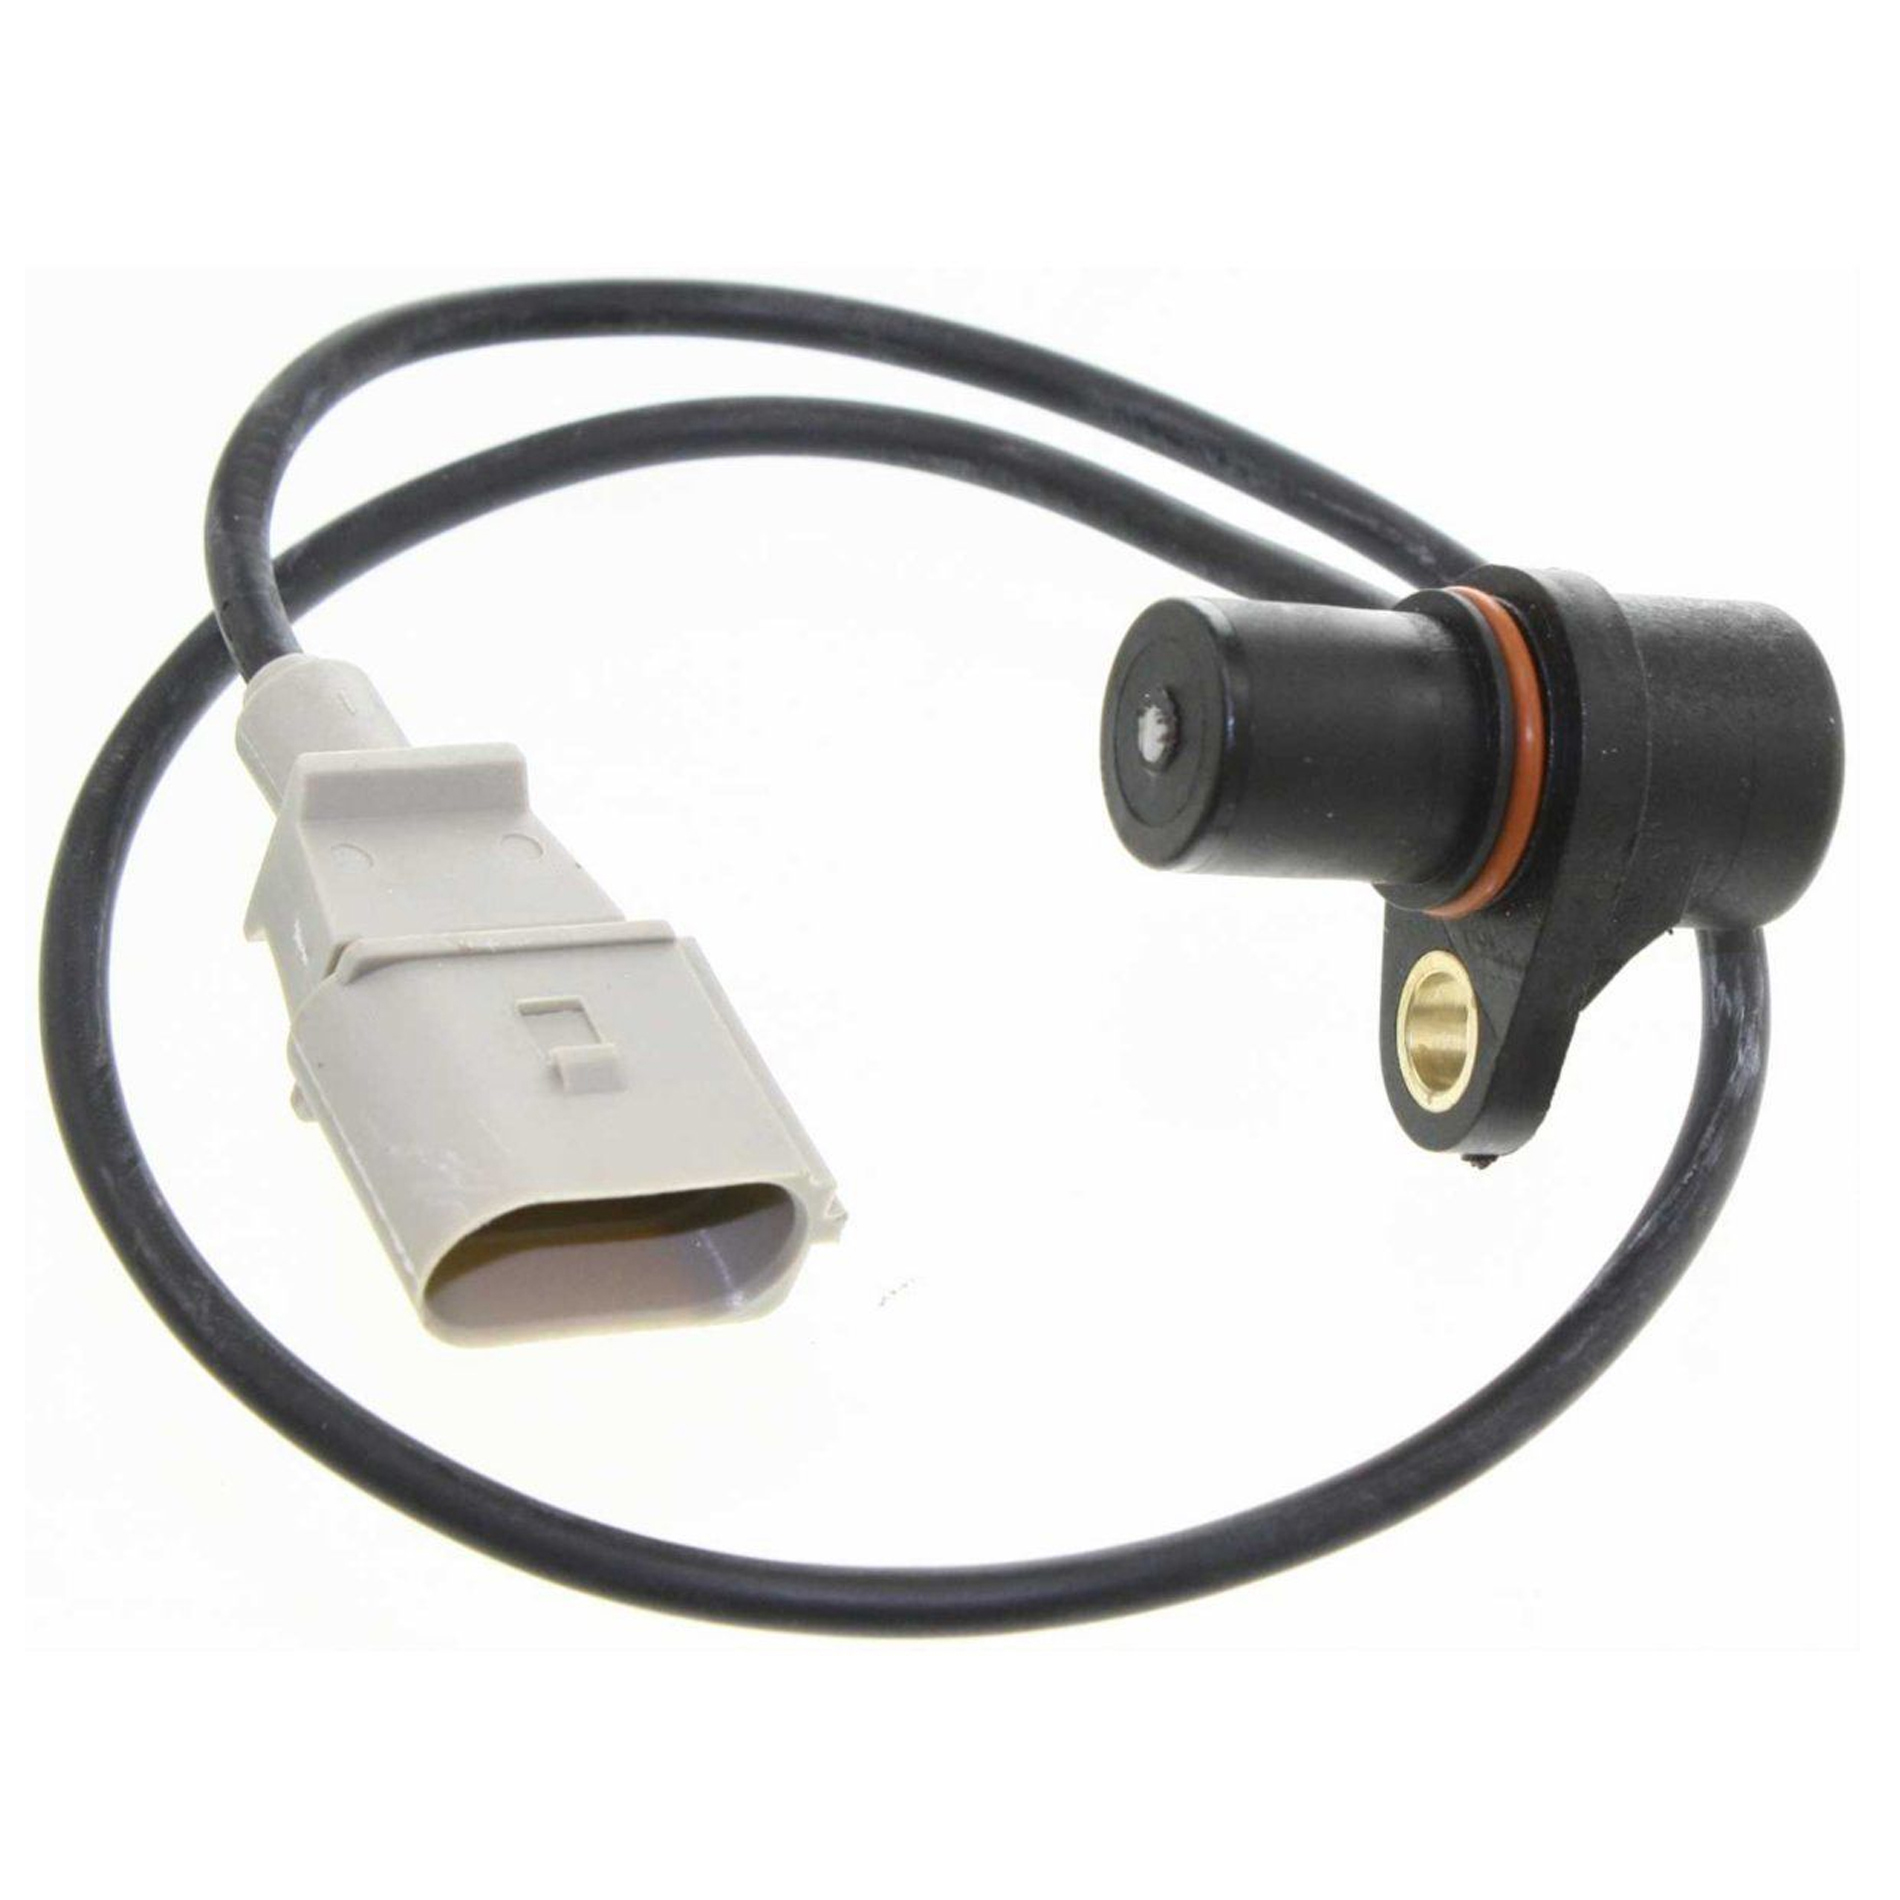 Crankshaft Position Sensor For VW Volkswagen Beetle Jetta Passat Audi 06A906433C